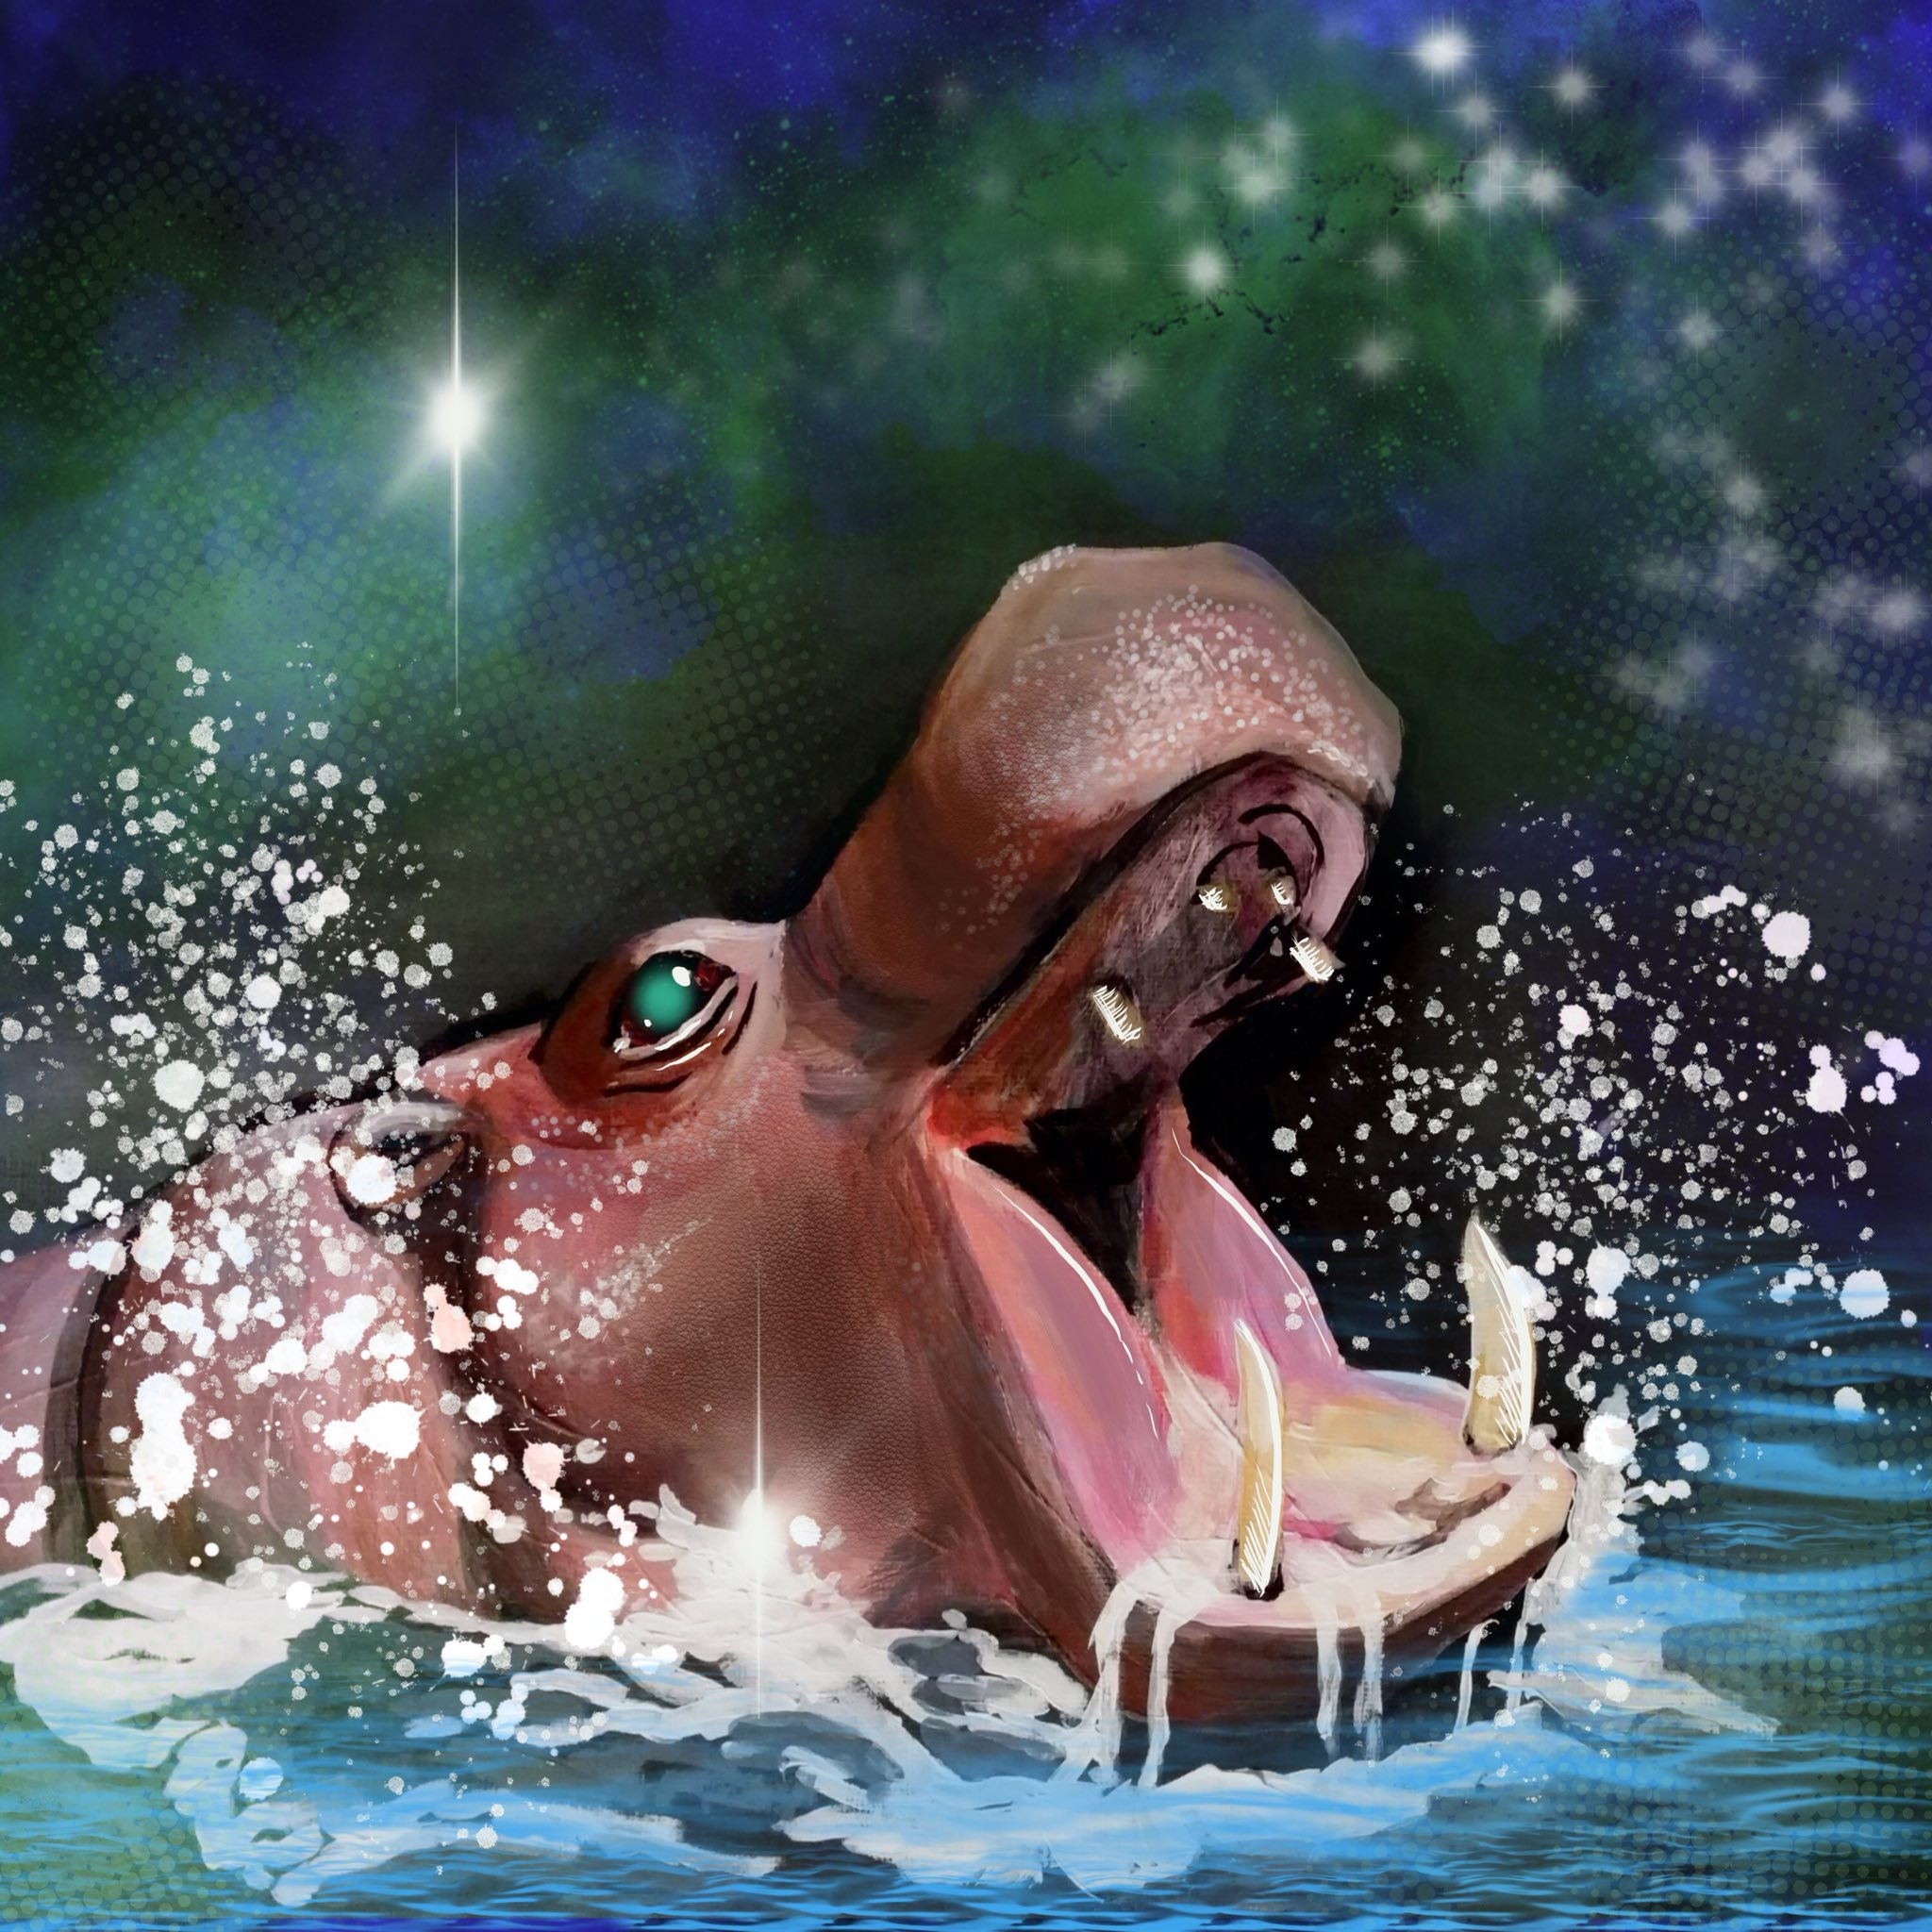 Pygmy Hippo emerging from the water with sparkles